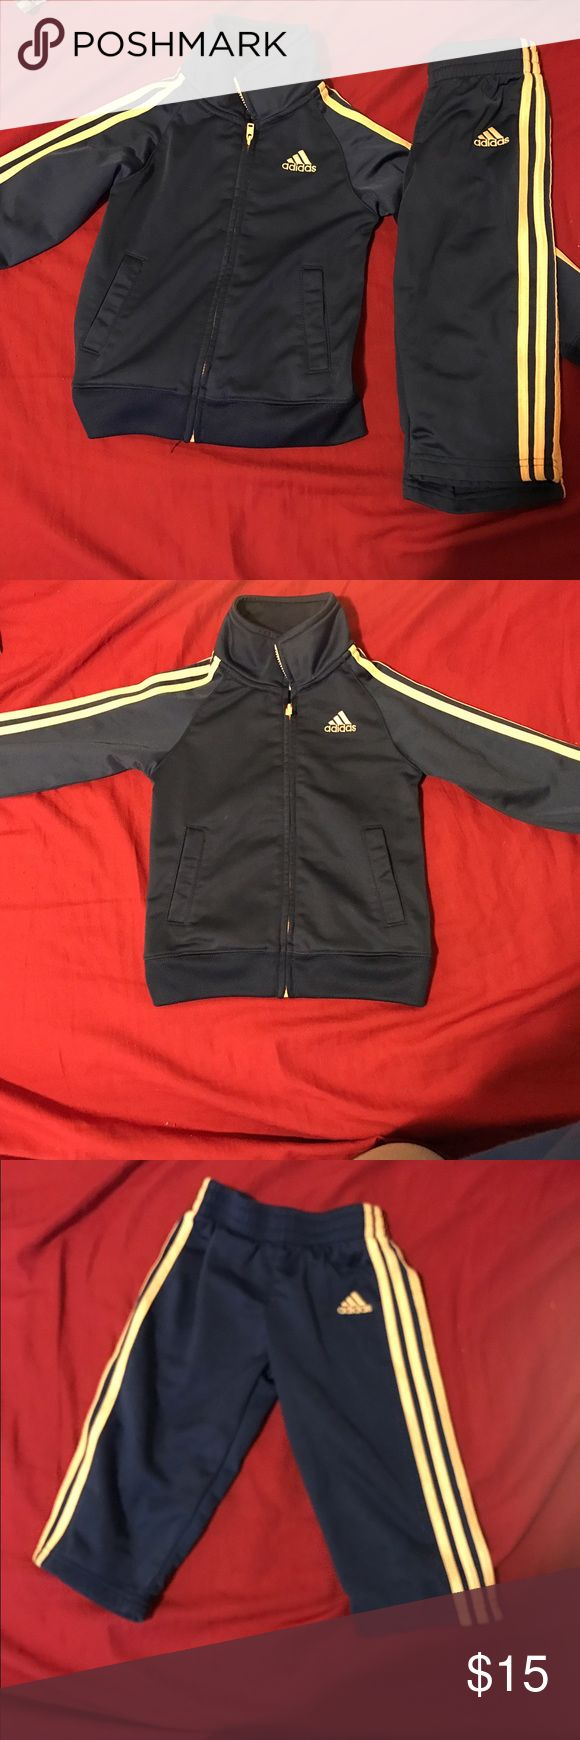 Blue & yellow adidas jogging suit Blue & yellow adidas jogging suit size 24 months gently used pet & smoke free home. Adidas Matching Sets